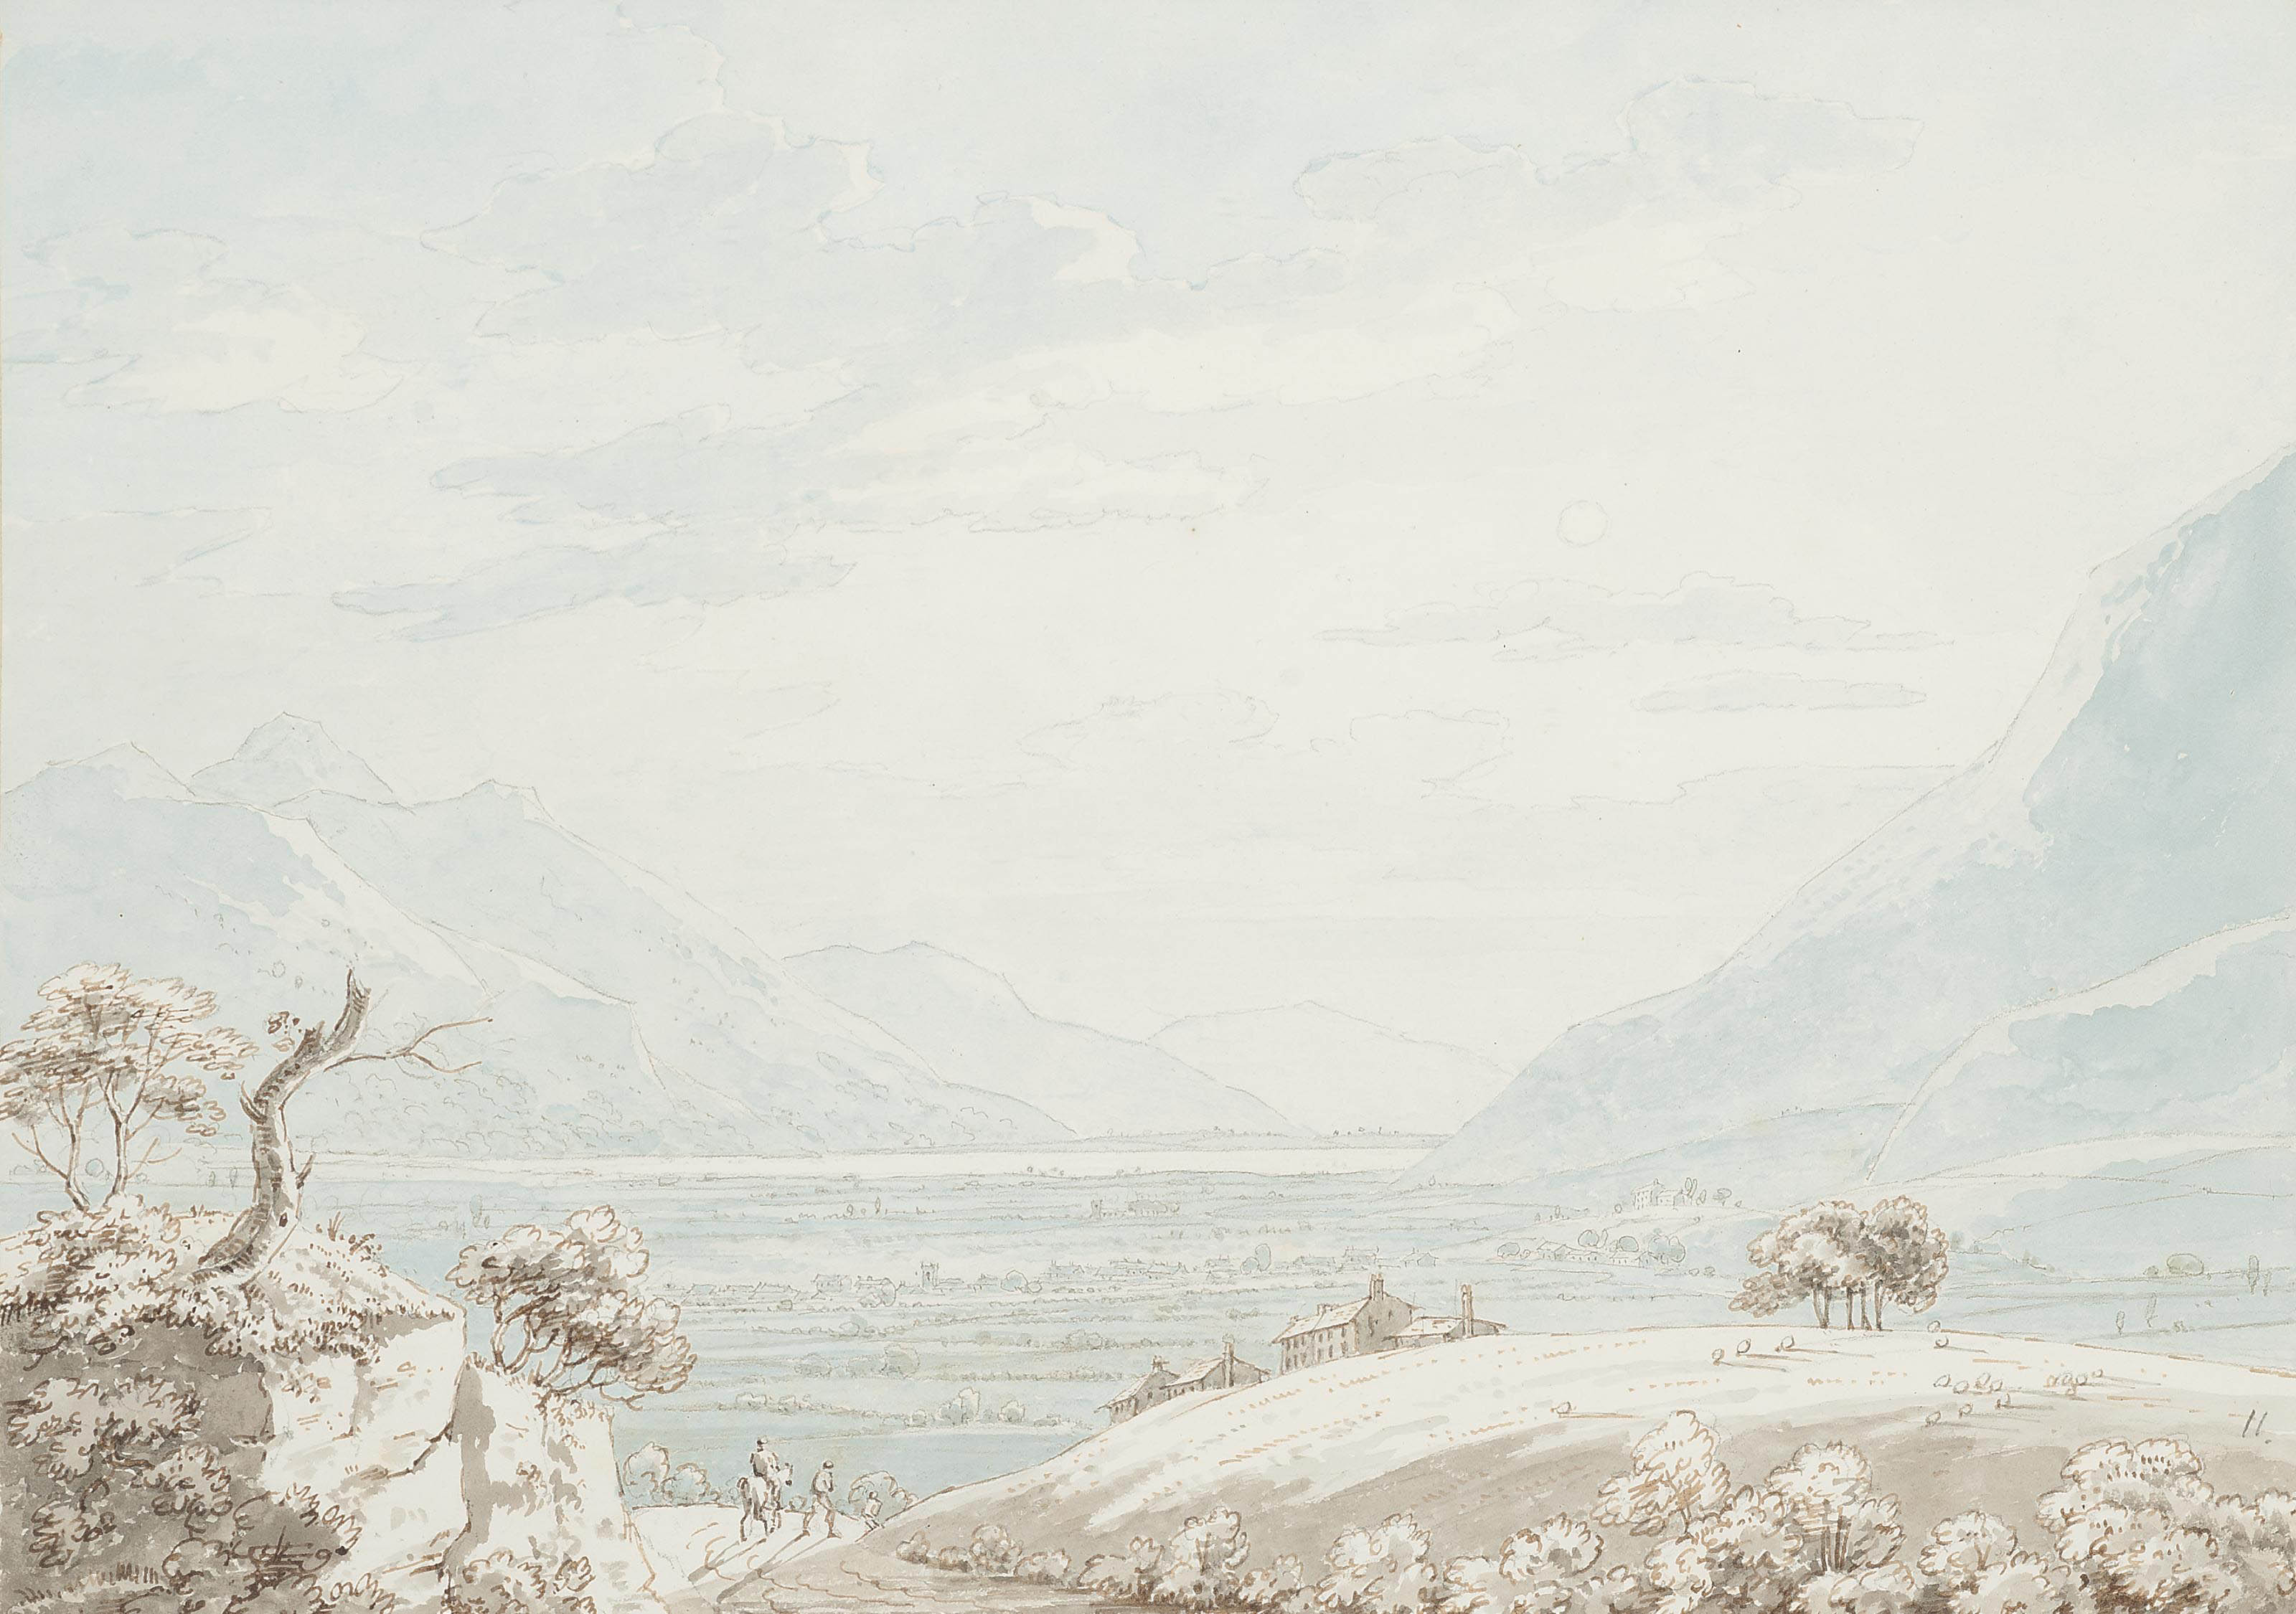 Travellers on a country lane overlooking a valley